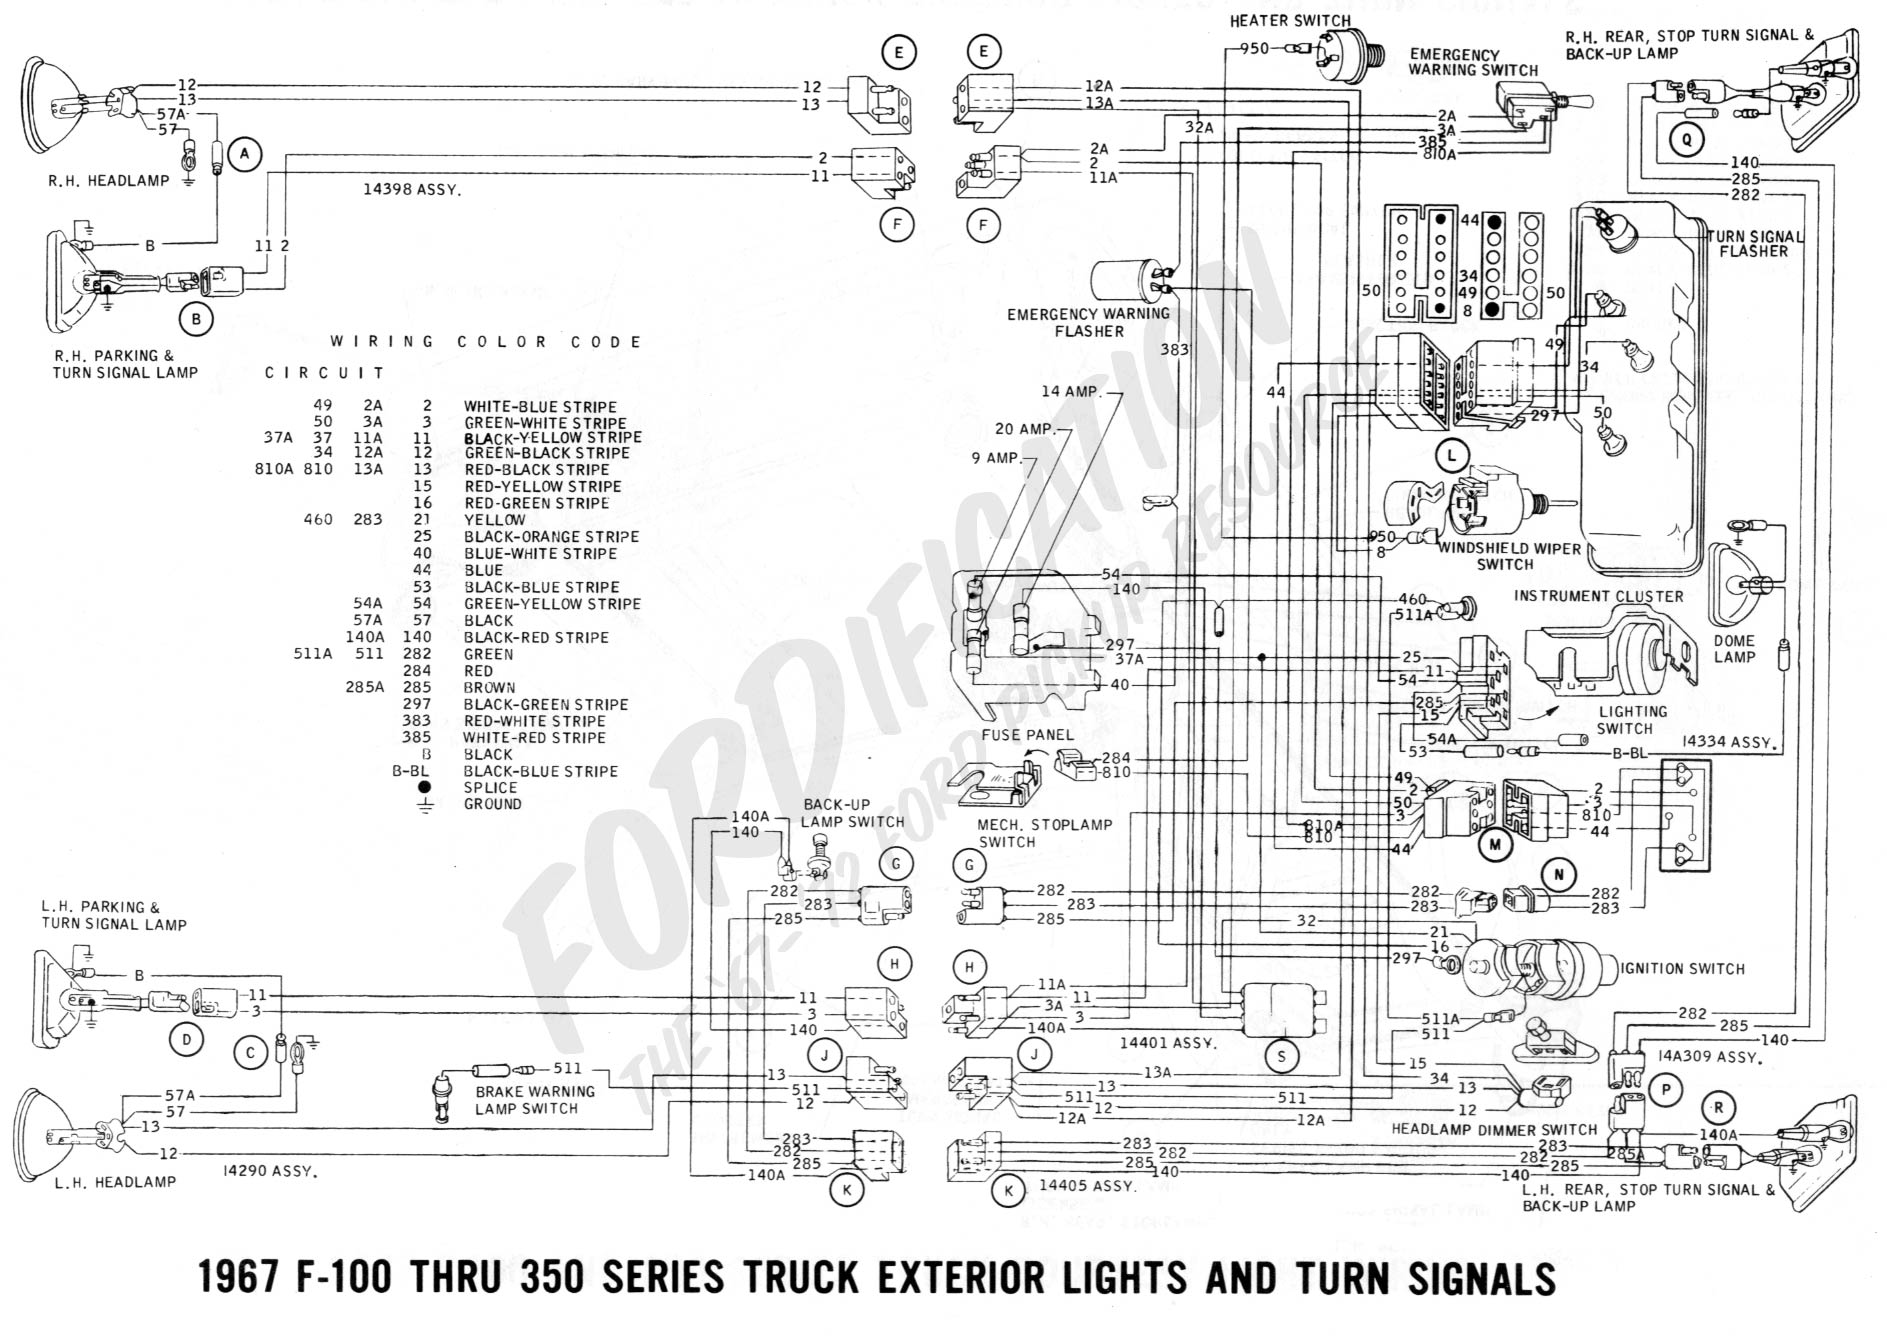 1955 1959 Chevy Truck Wiring Diagram Will Be A Thing Bel Air Harness Ford Technical Drawings And Schematics Section H 57 55